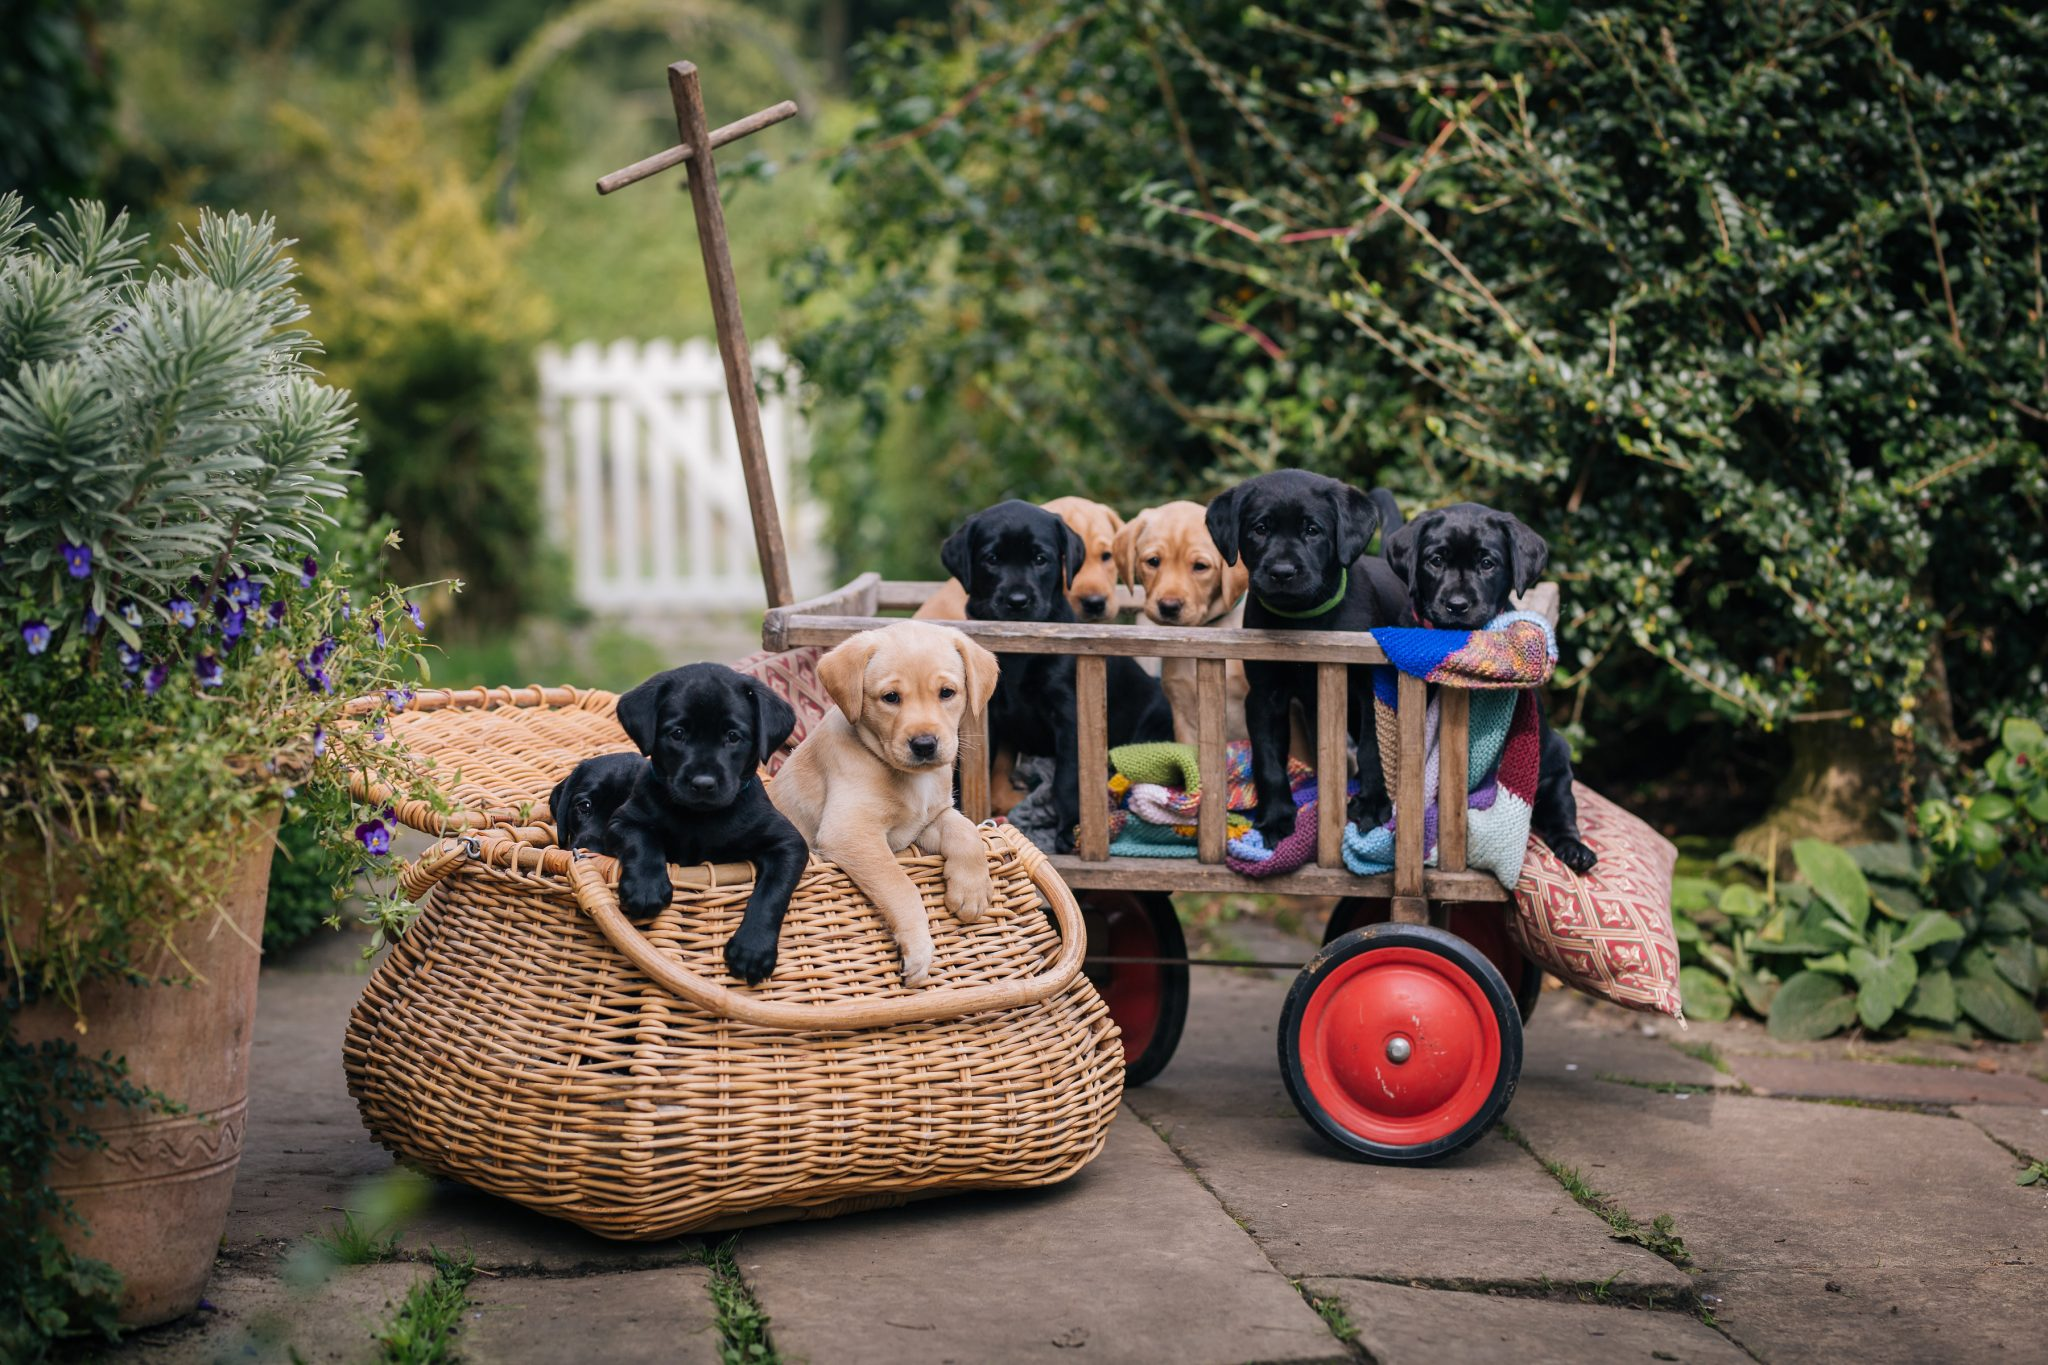 Labrador Puppies photographer Joanna Eardley